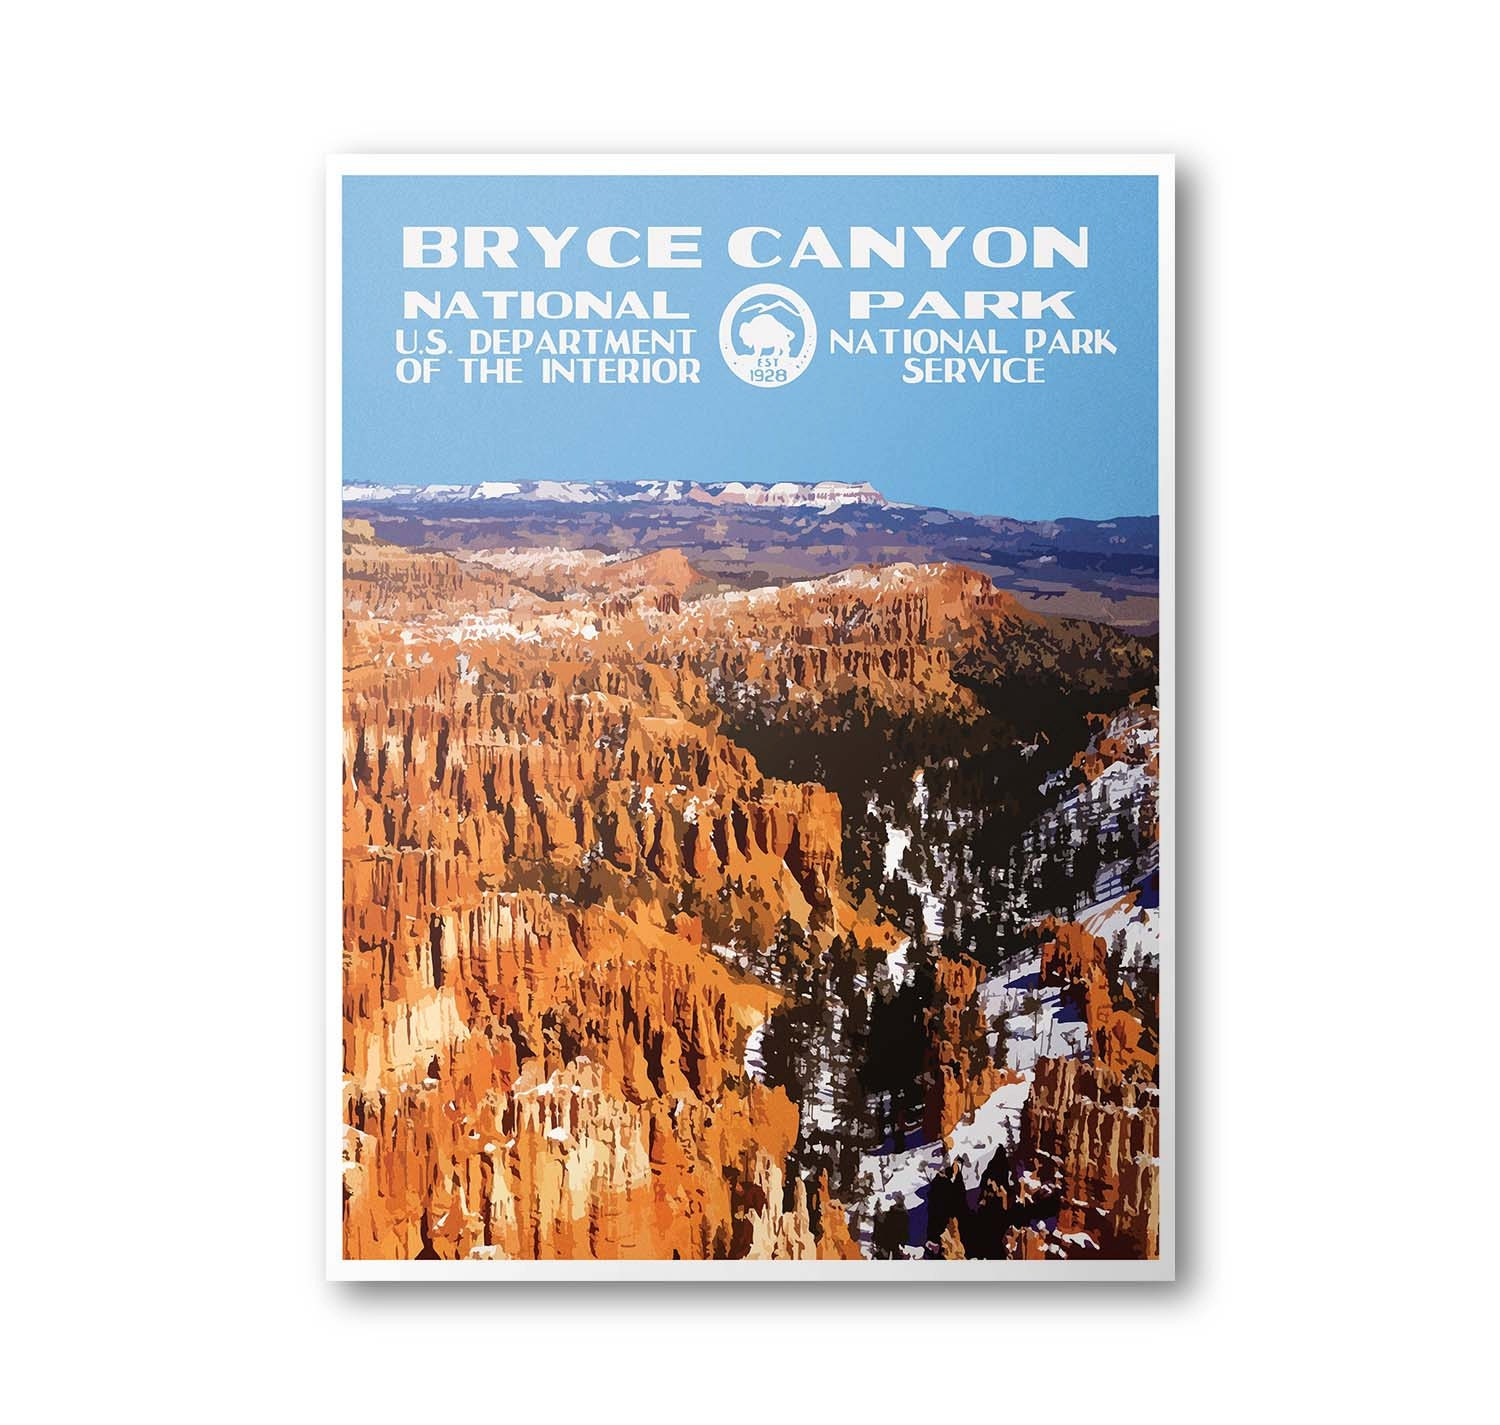 Travel To National Parks Poster: Bryce Canyon National Park Travel Poster